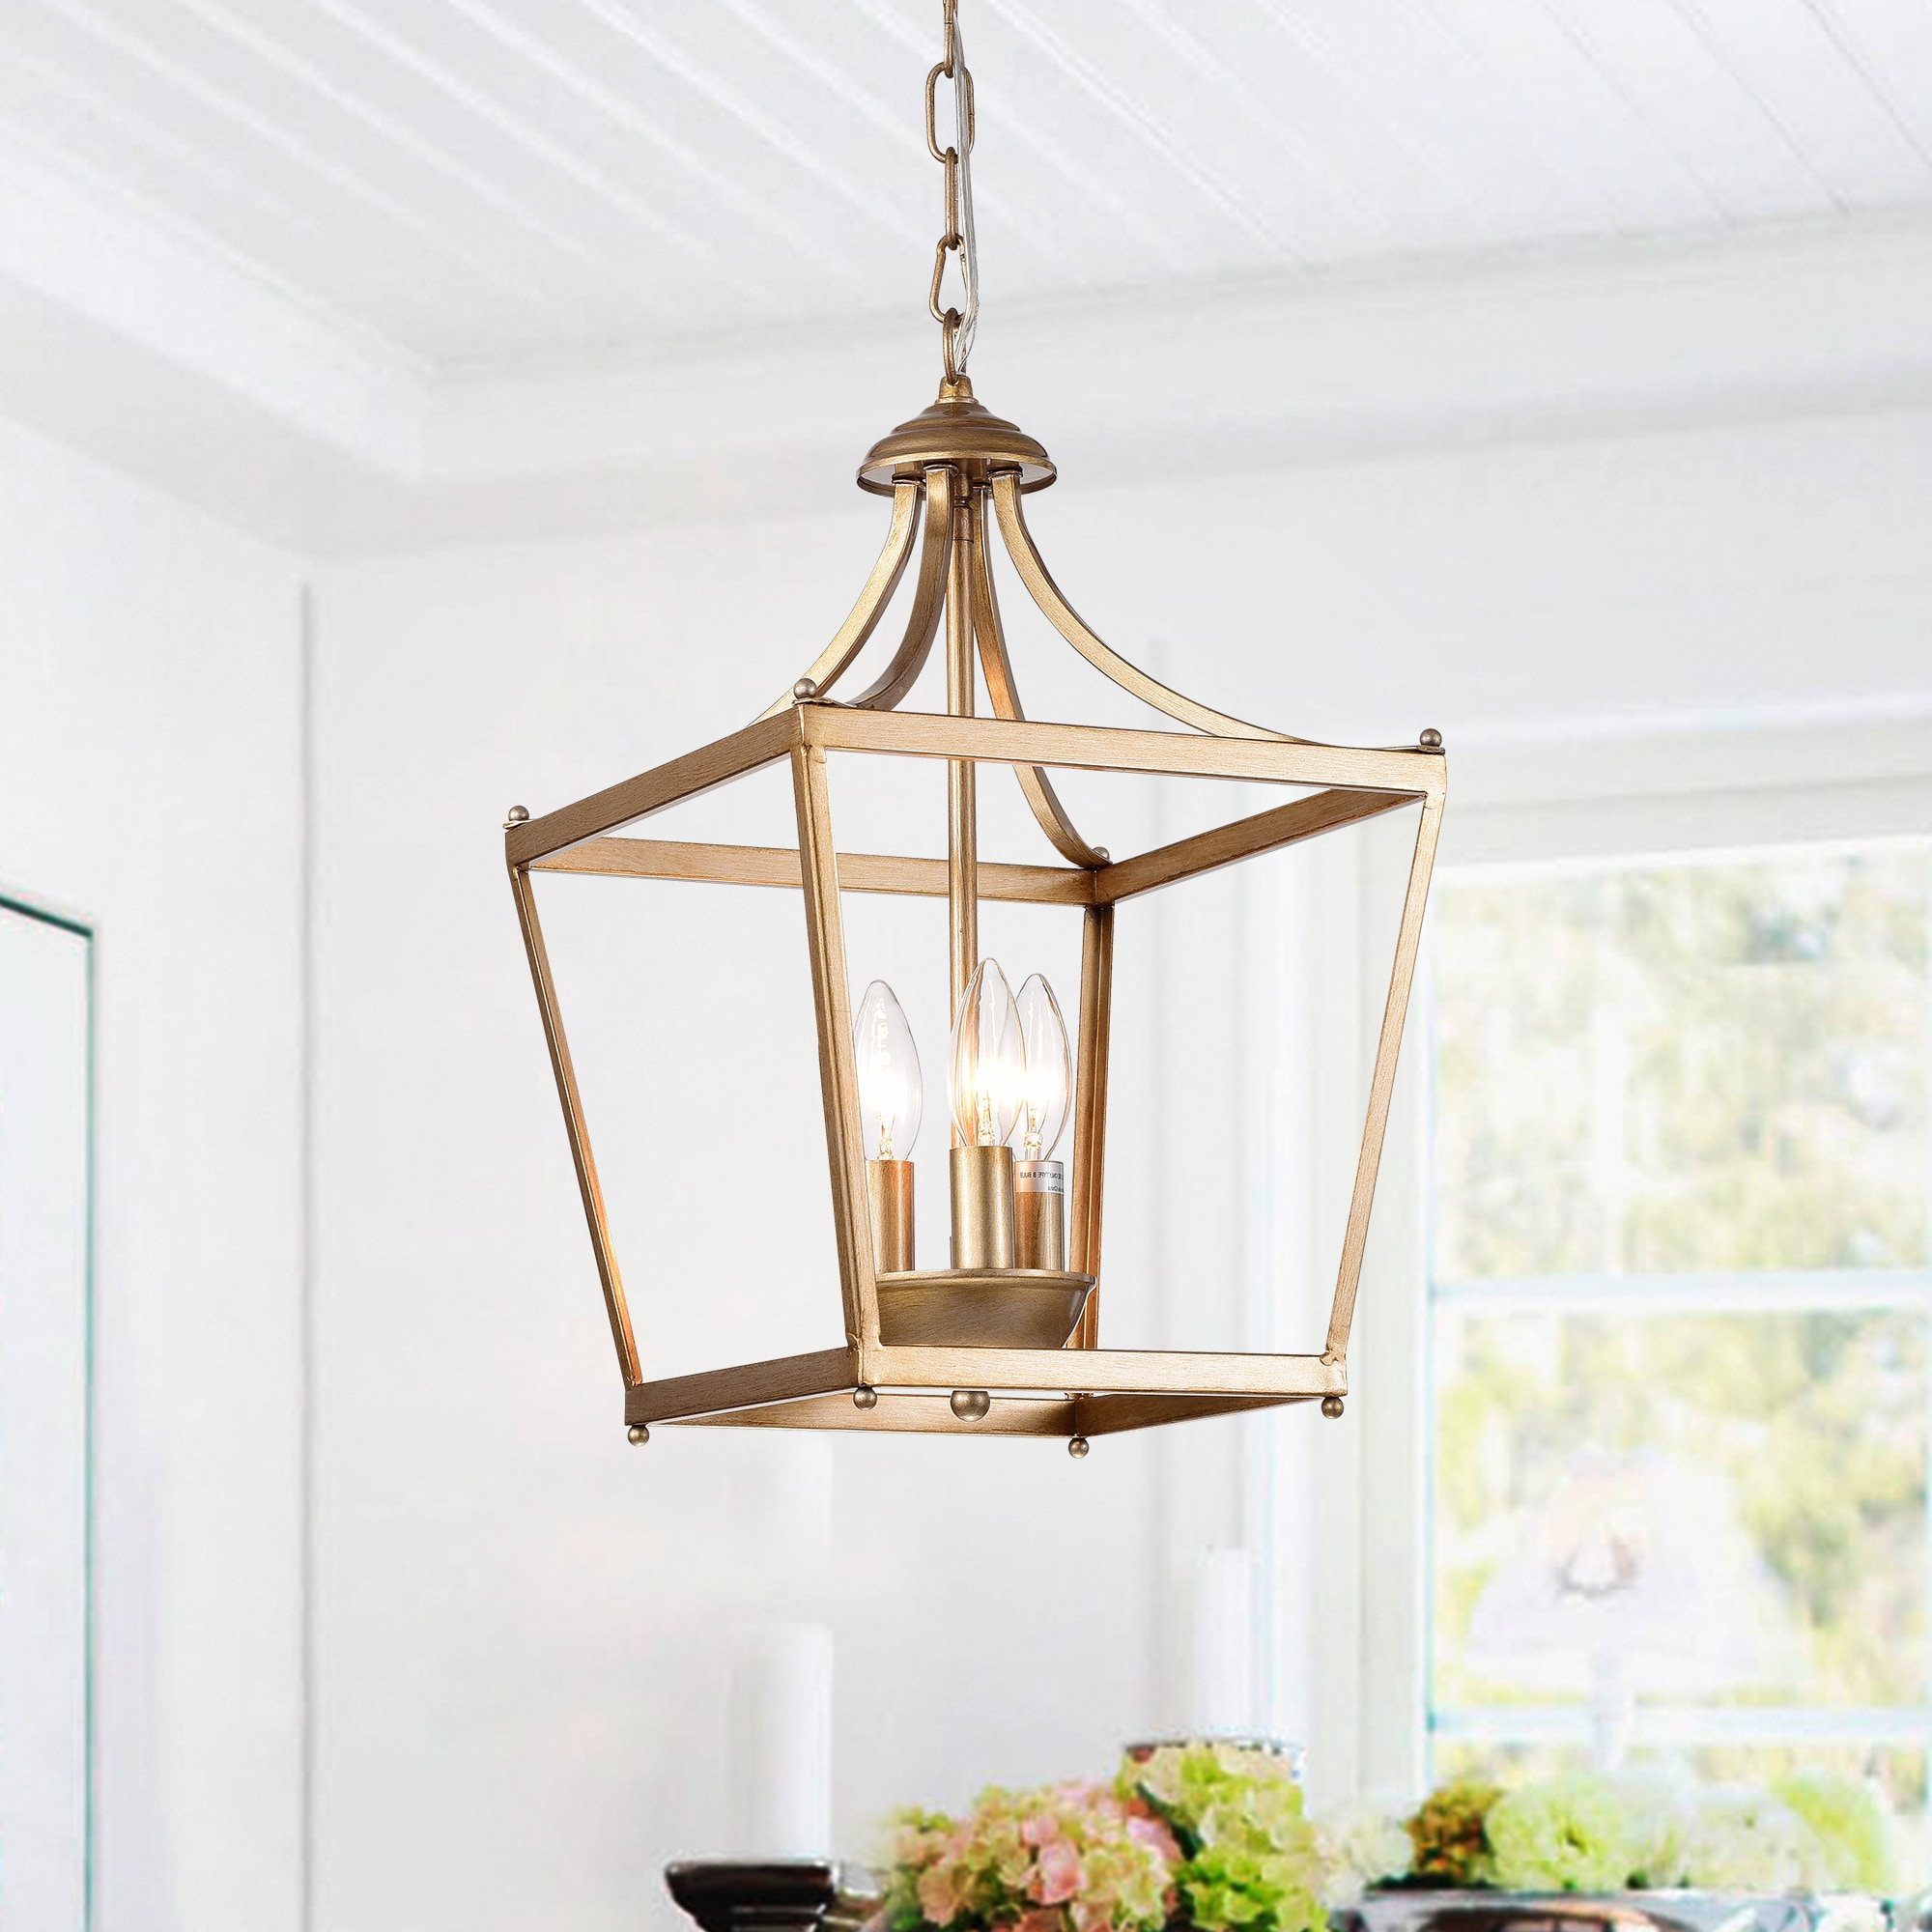 2020 Warehouse Of Tiffany Sunsus Gold 3 Light Lantern Pendant (11 Intended For Gabriella 3 Light Lantern Chandeliers (View 2 of 20)